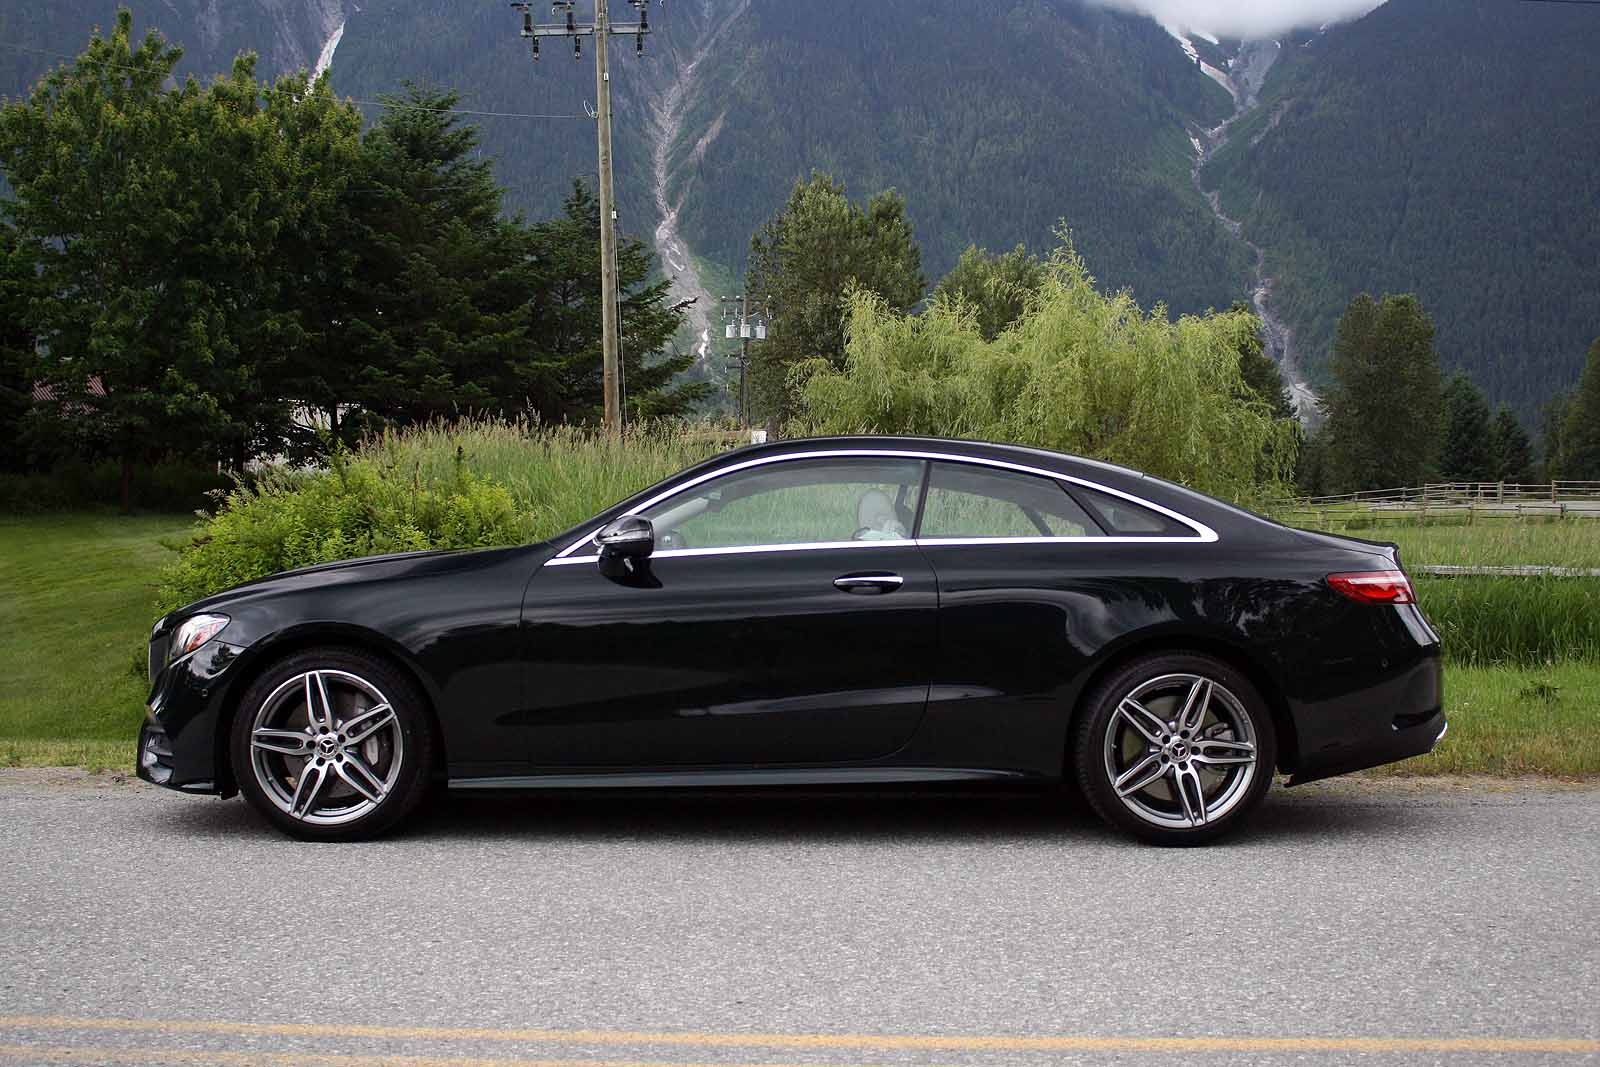 2018 mercedes benz coupe. beautiful coupe 2018 mercedesbenz e400 coupe reviewlai009 in mercedes benz coupe e